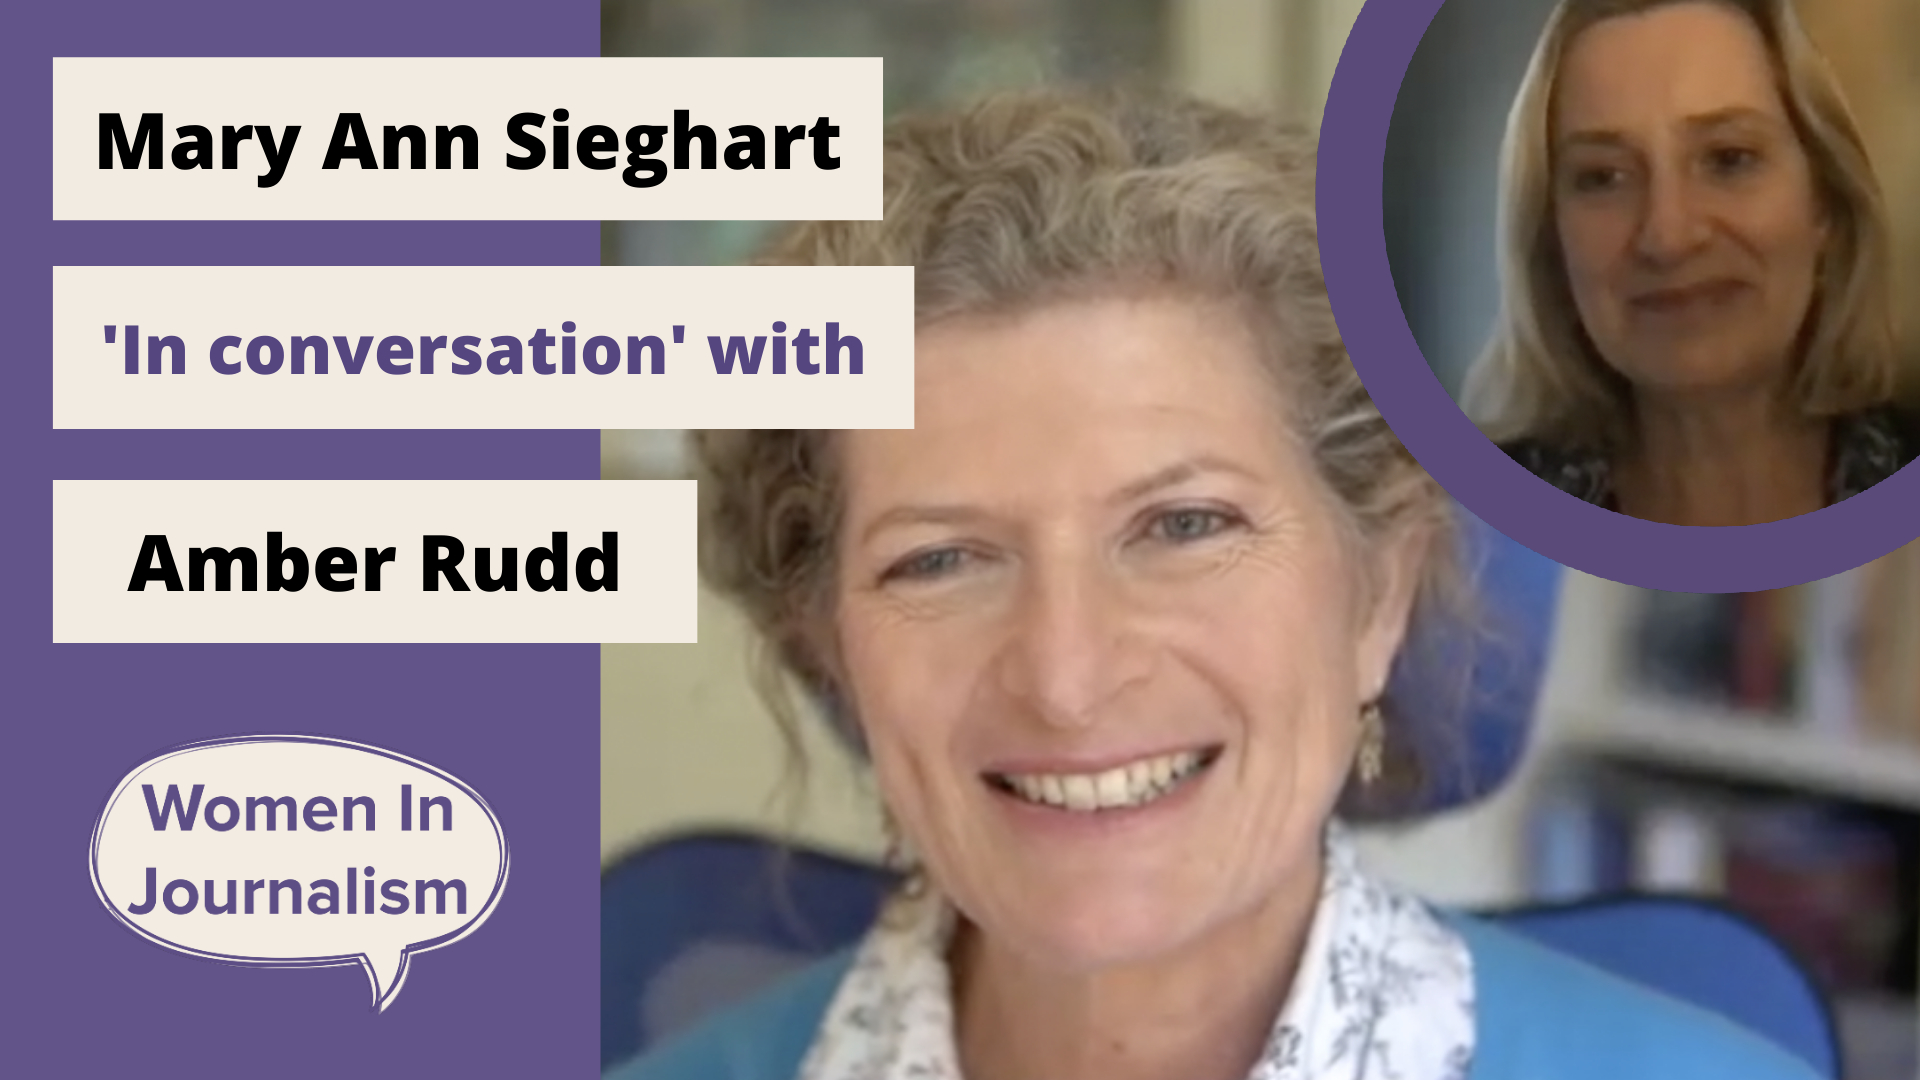 TOP TIPS: Mary Ann Sieghart 'In conversation' with Amber Rudd